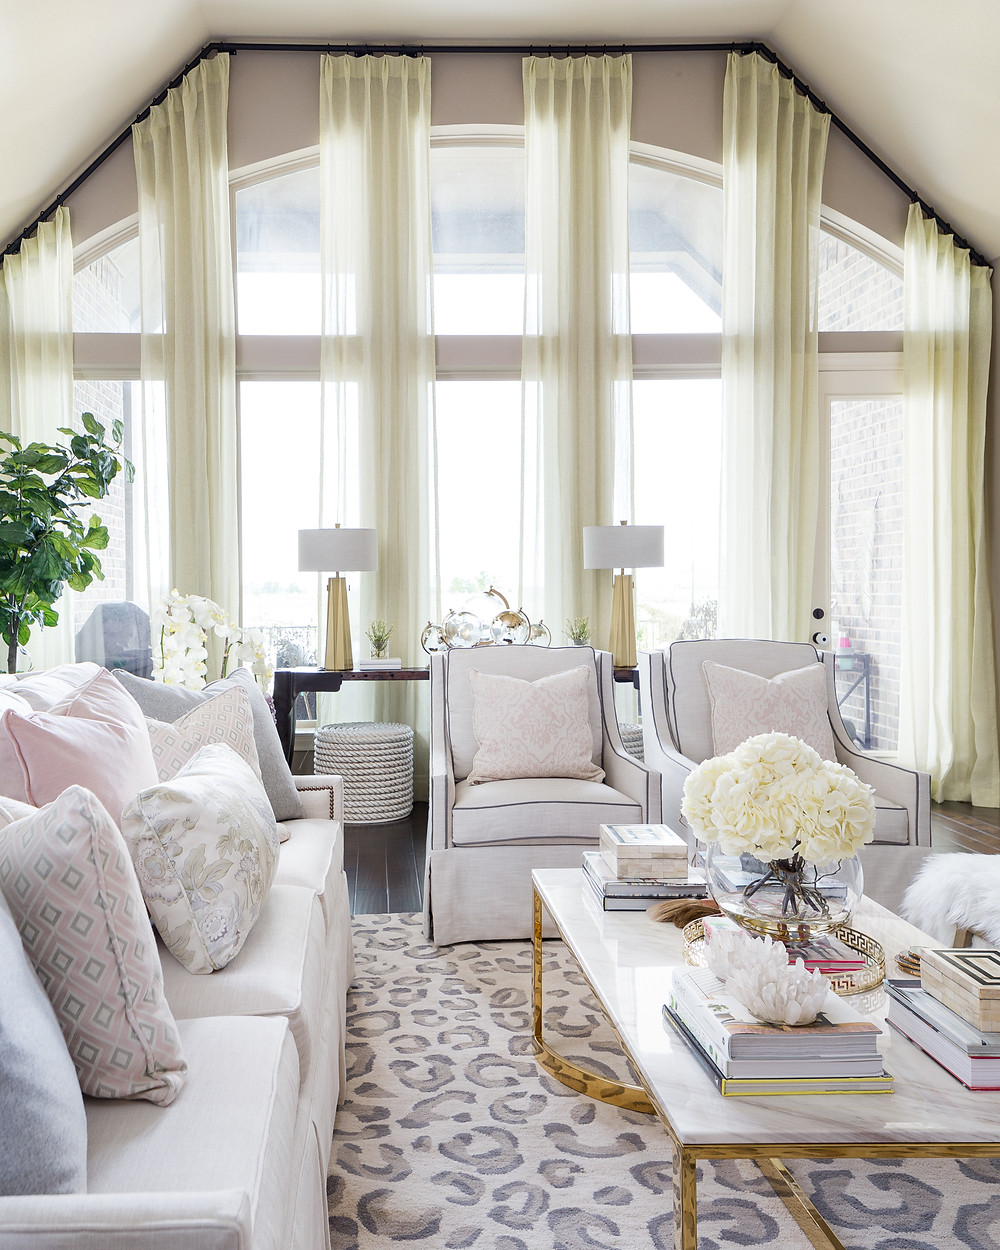 White furniture in a living room